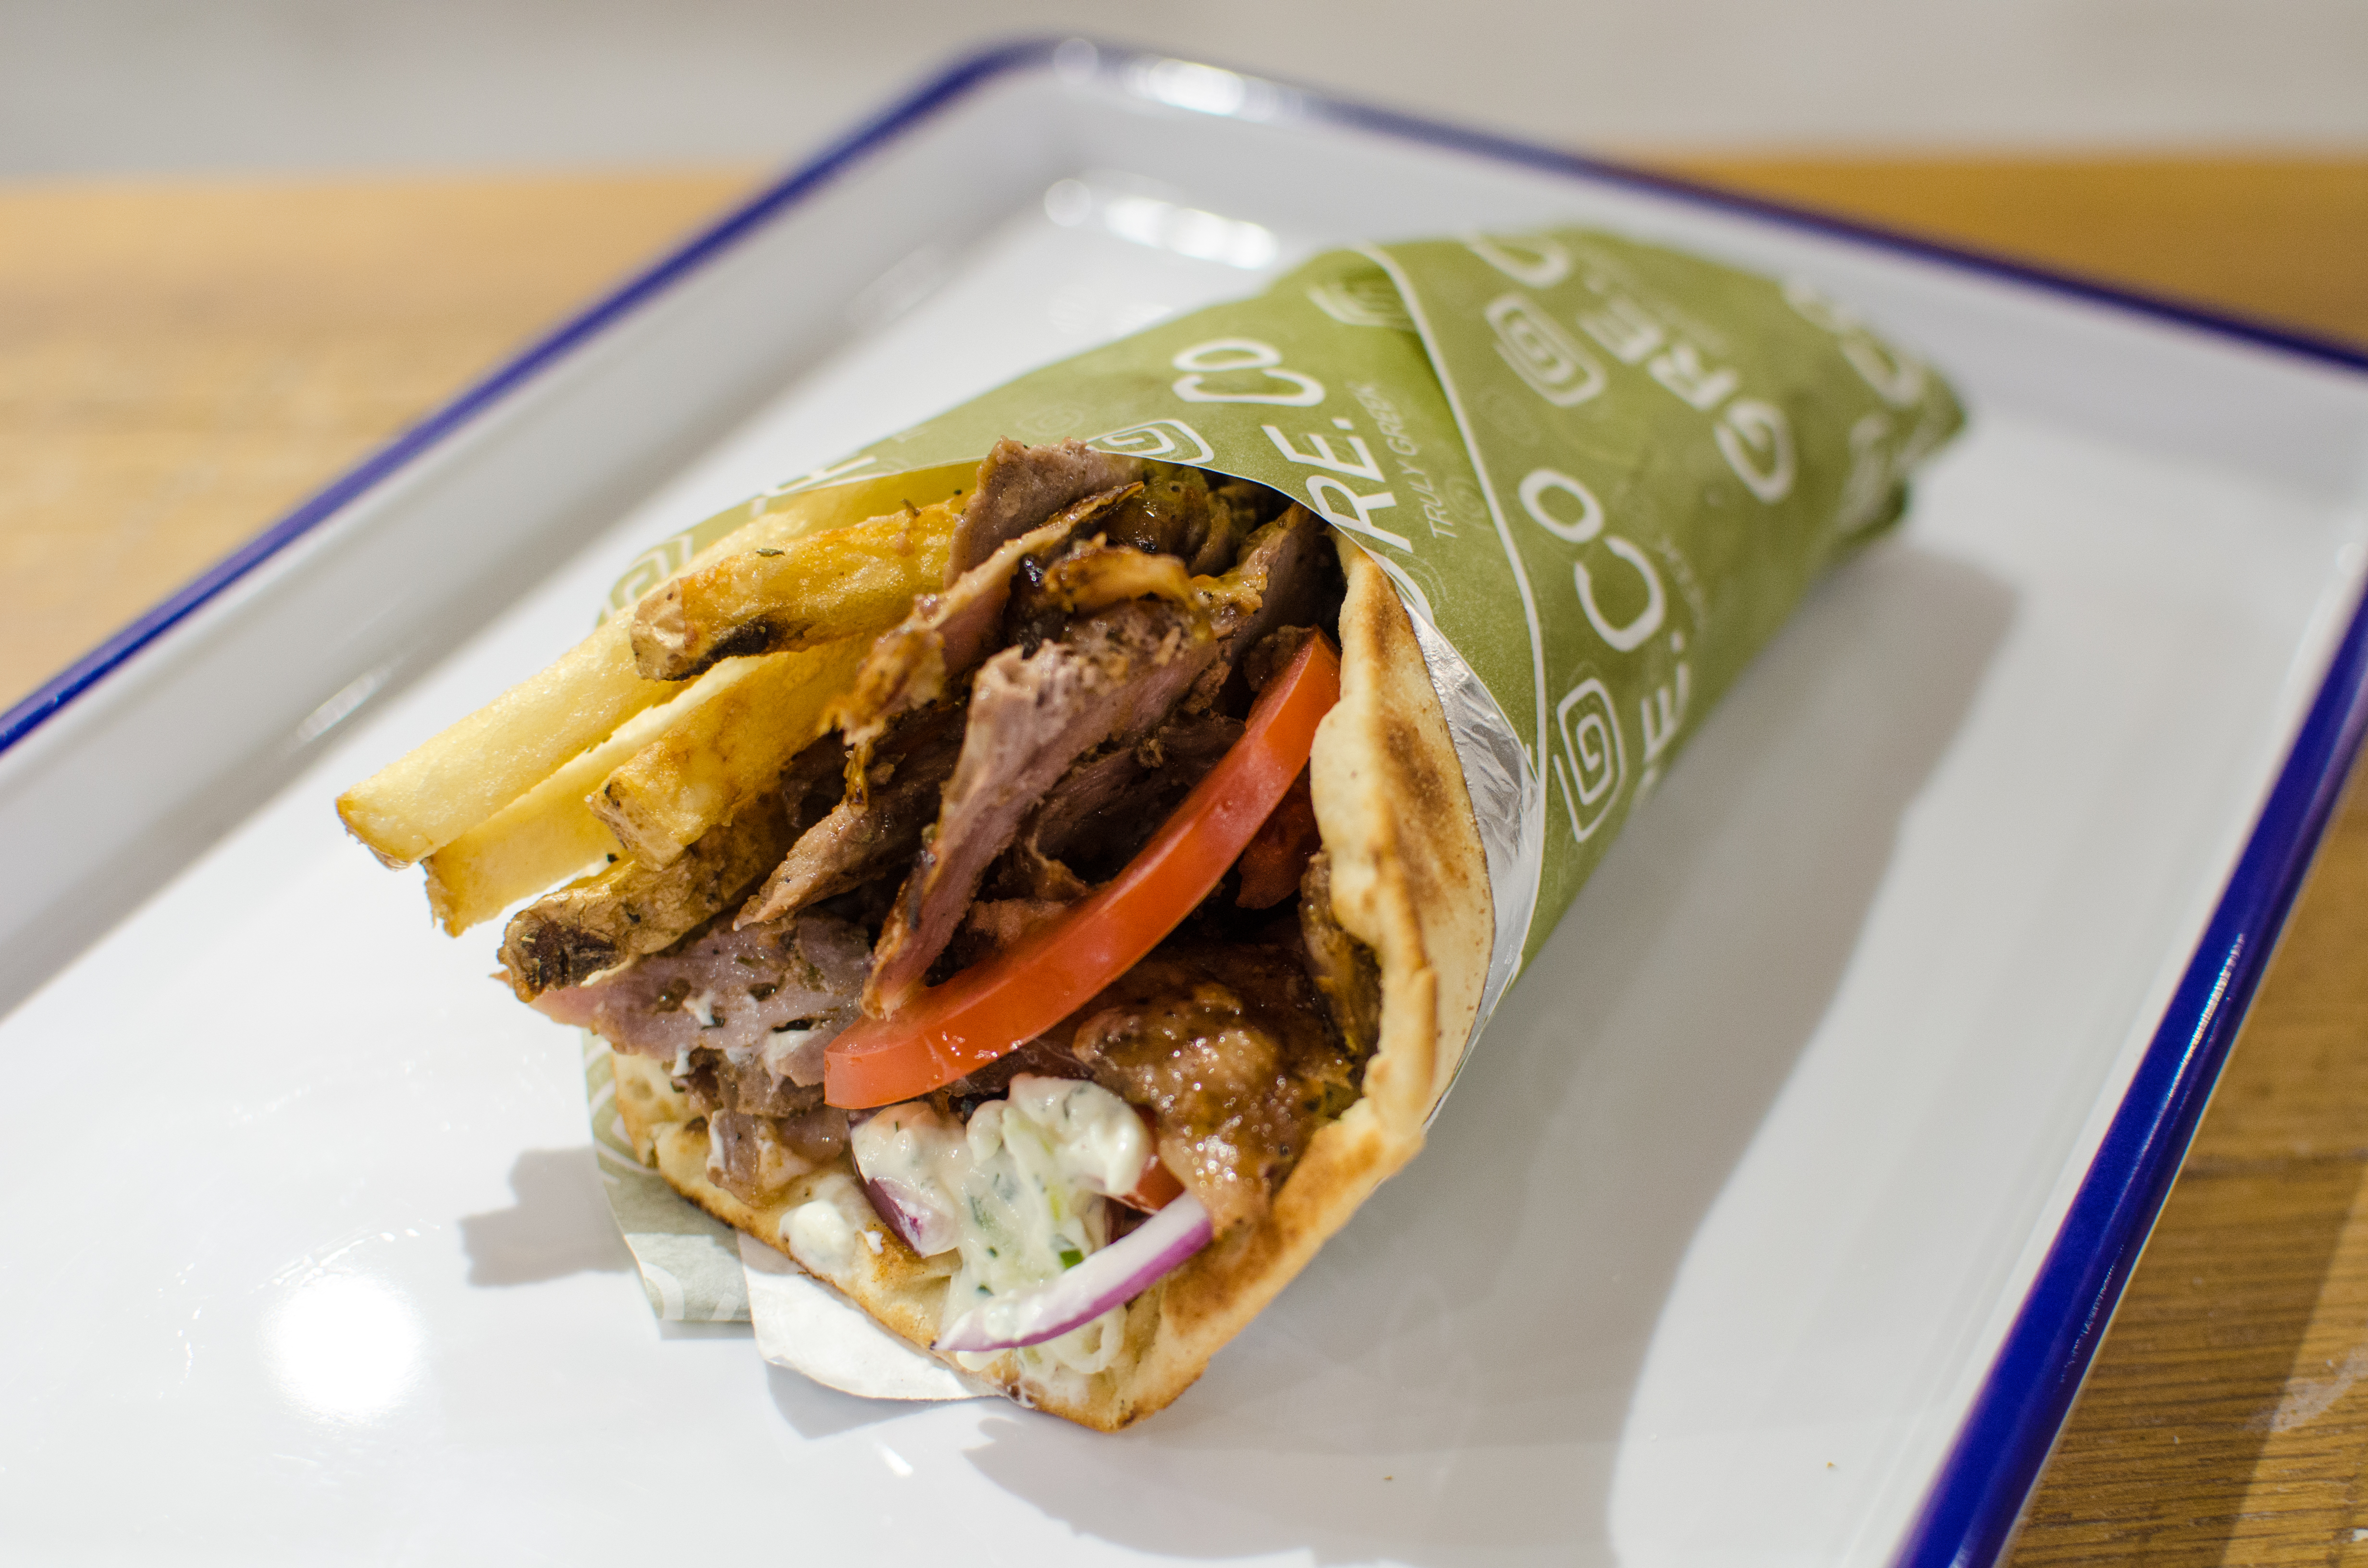 A gyro from Greco's original location in Back Bay